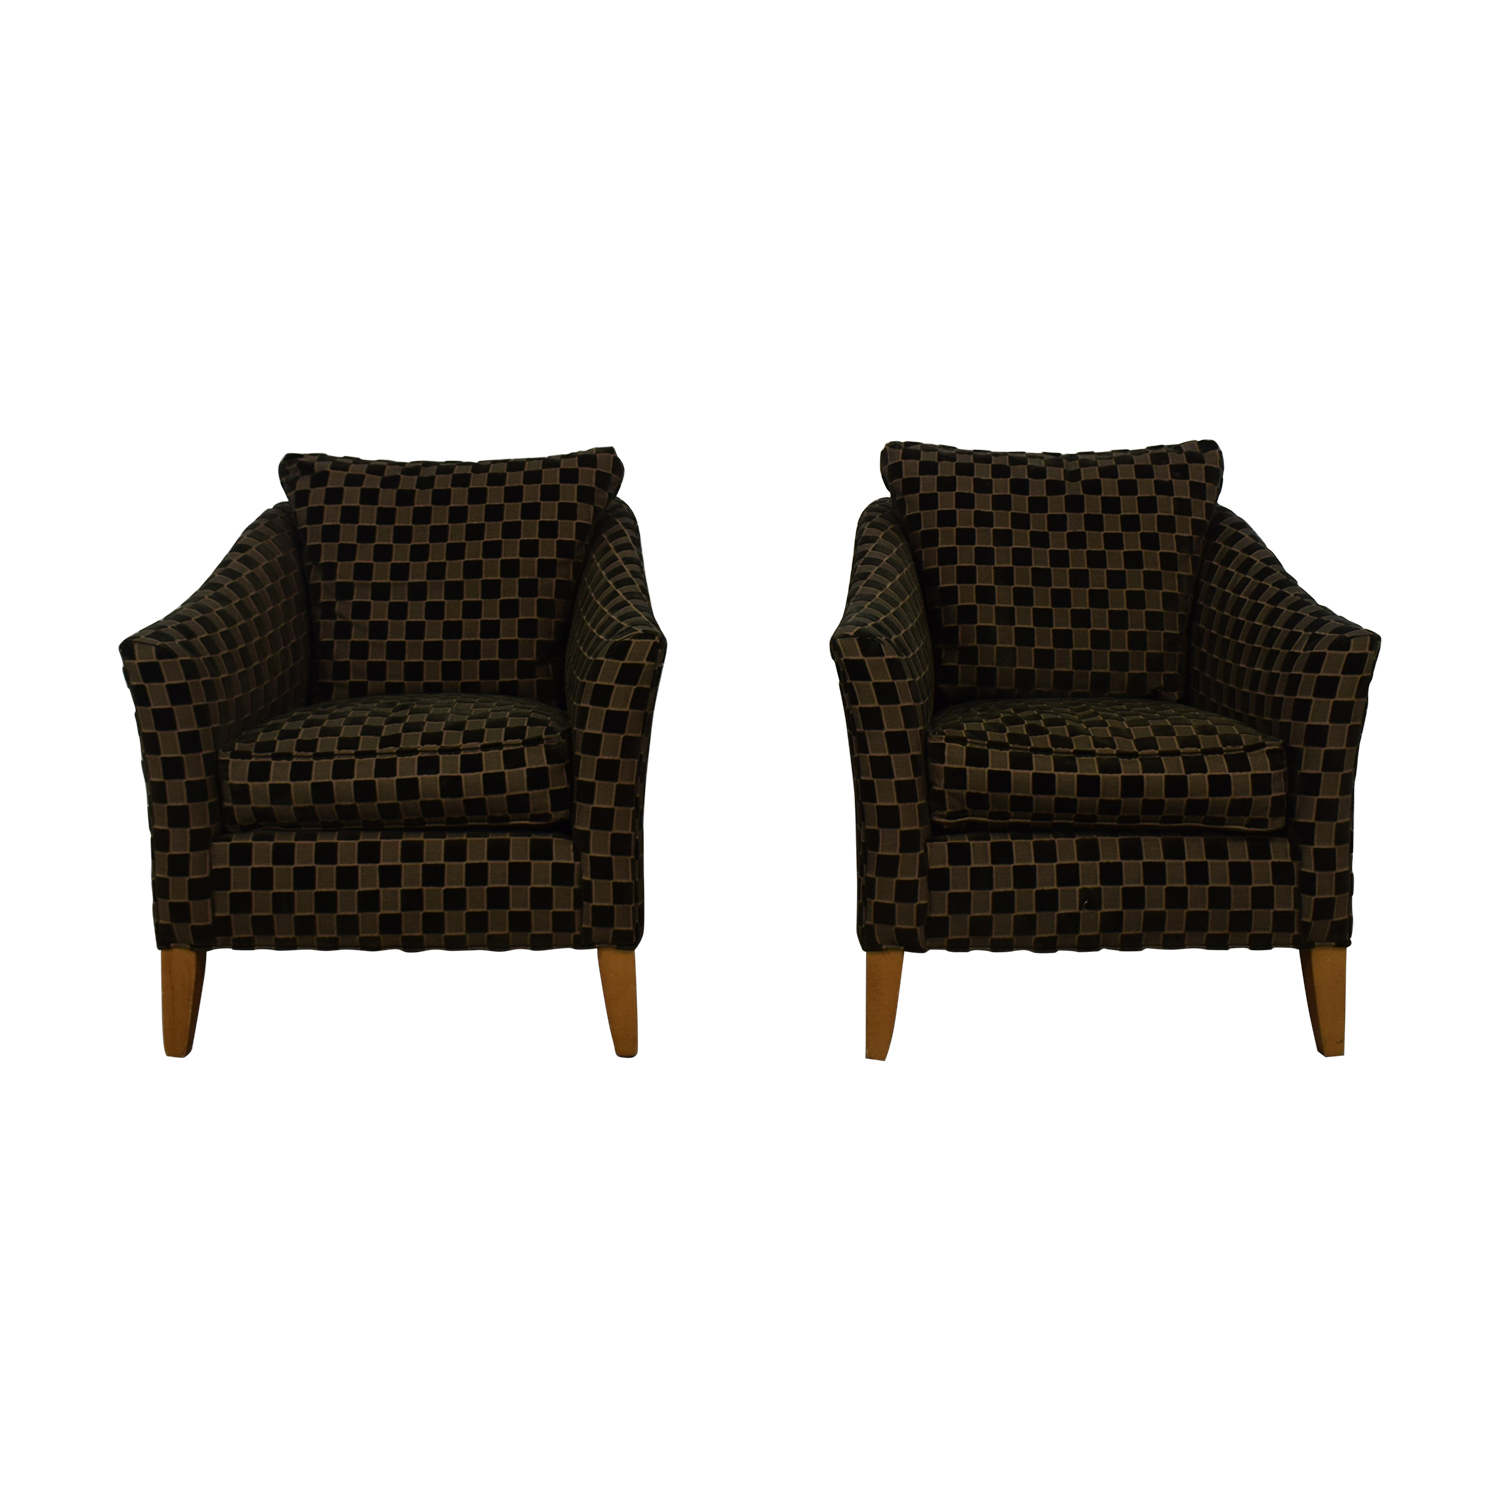 Ethan Allen Ethan Allen Checkered Accent Chairs used